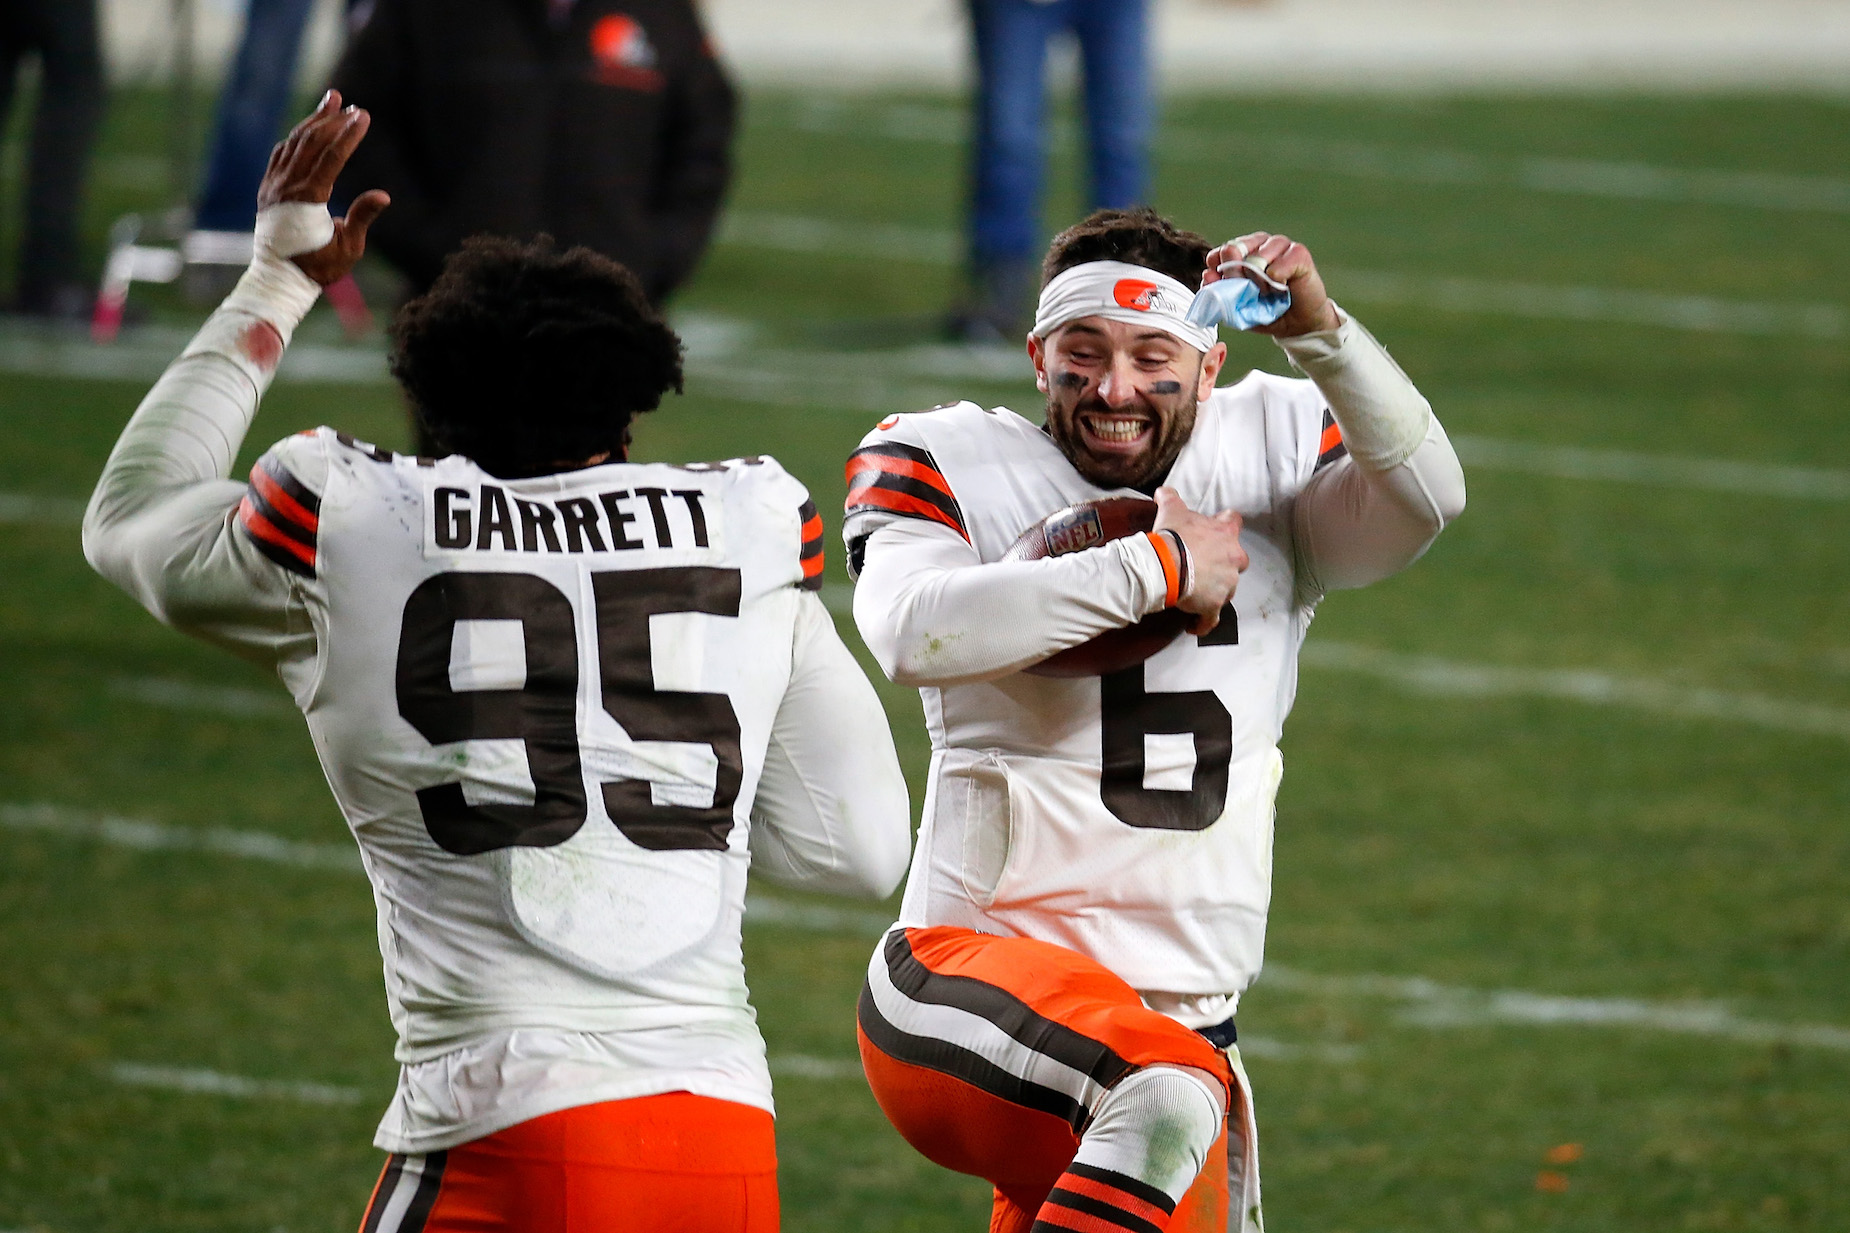 Baker Mayfield and the Cleveland Browns Mercilessly Trolled JuJu Smith-Schuster After Embarrassing the Steelers